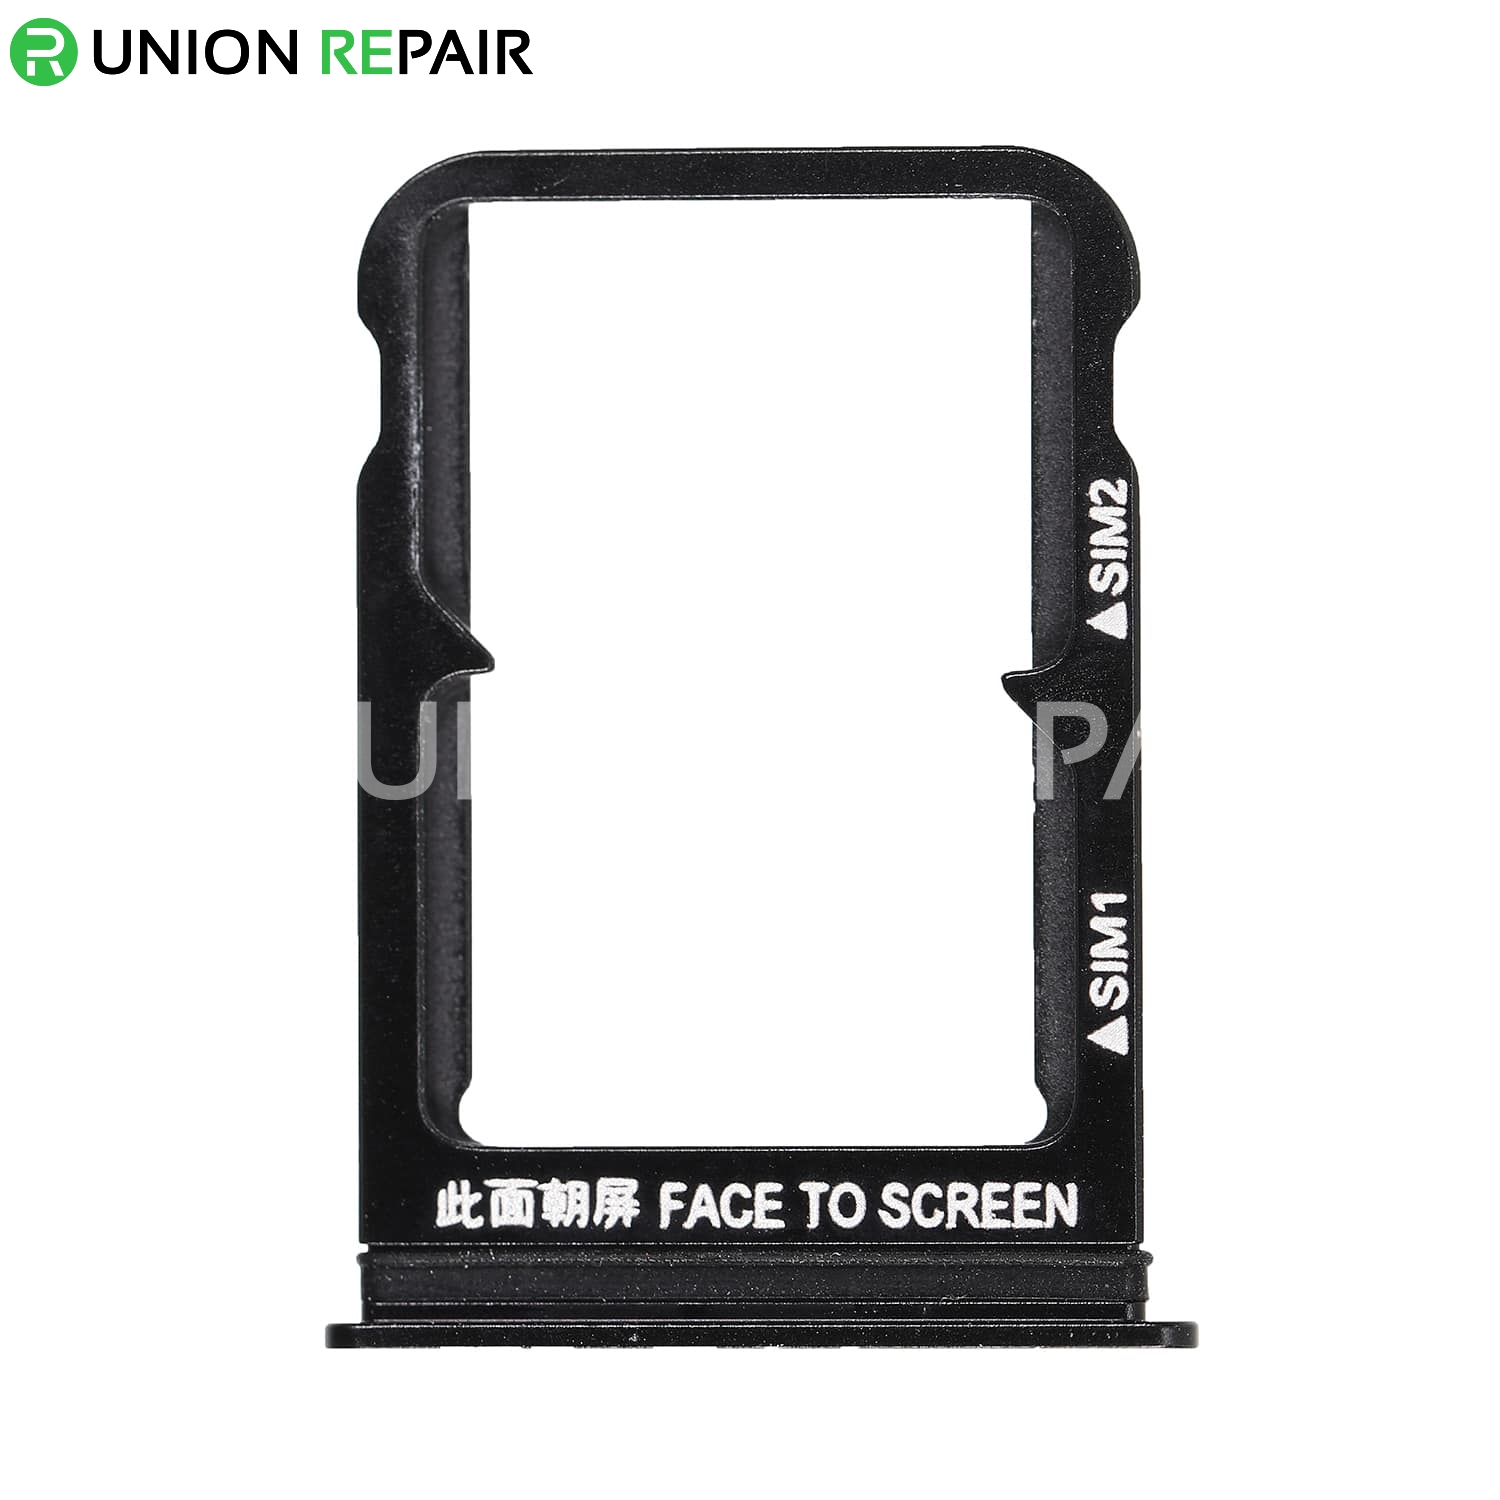 Replacement for Xiaomi 8 SIM Card Tray - Black